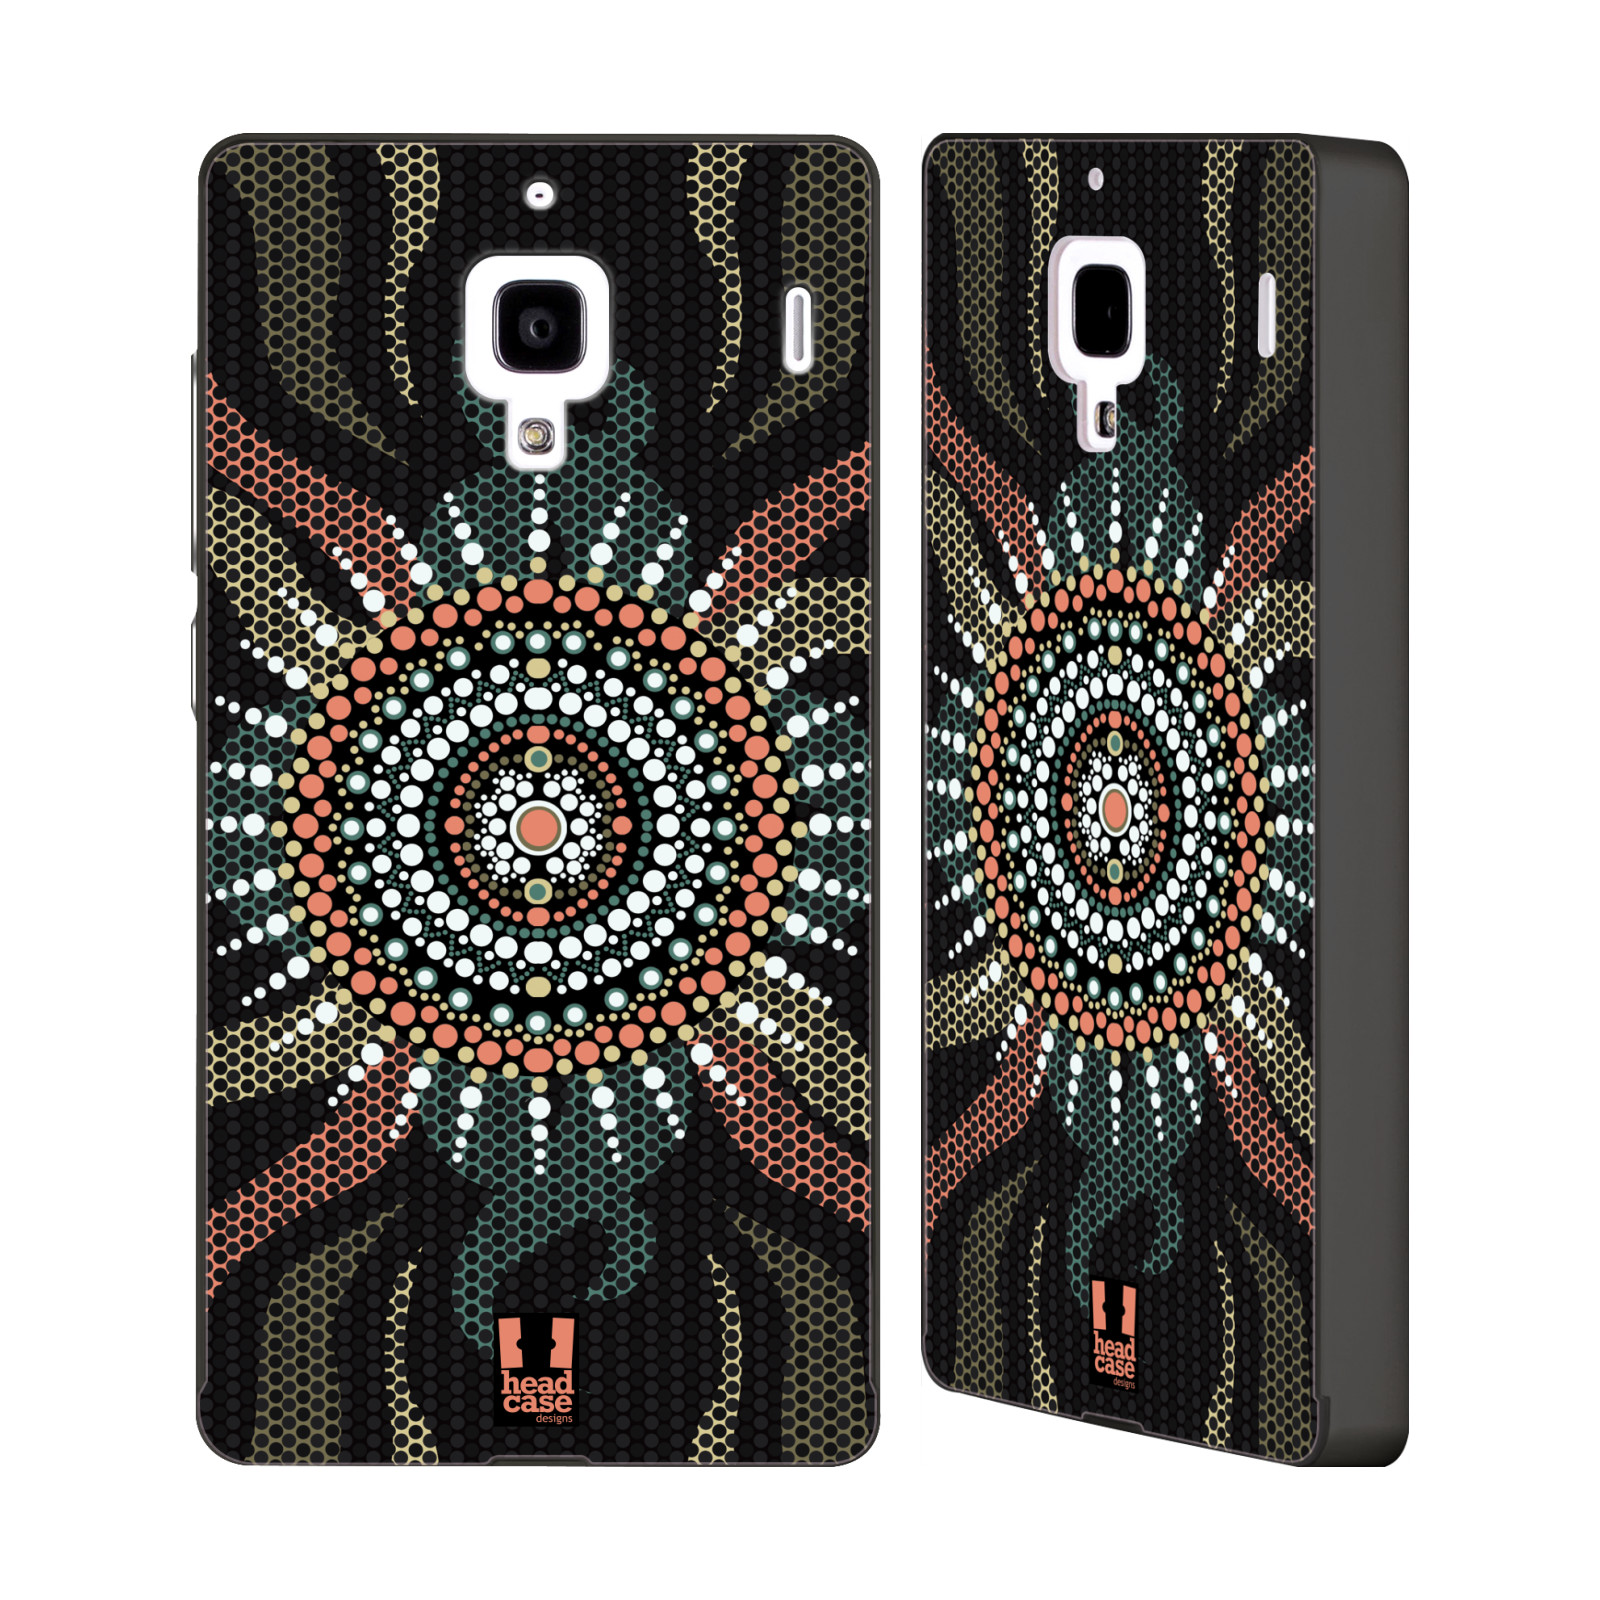 HEAD-CASE-DESIGNS-ABORIGINAL-DOTS-BLACK-SLIDER-CASE-FOR-HUAWEI-XIAOMI-PHONES